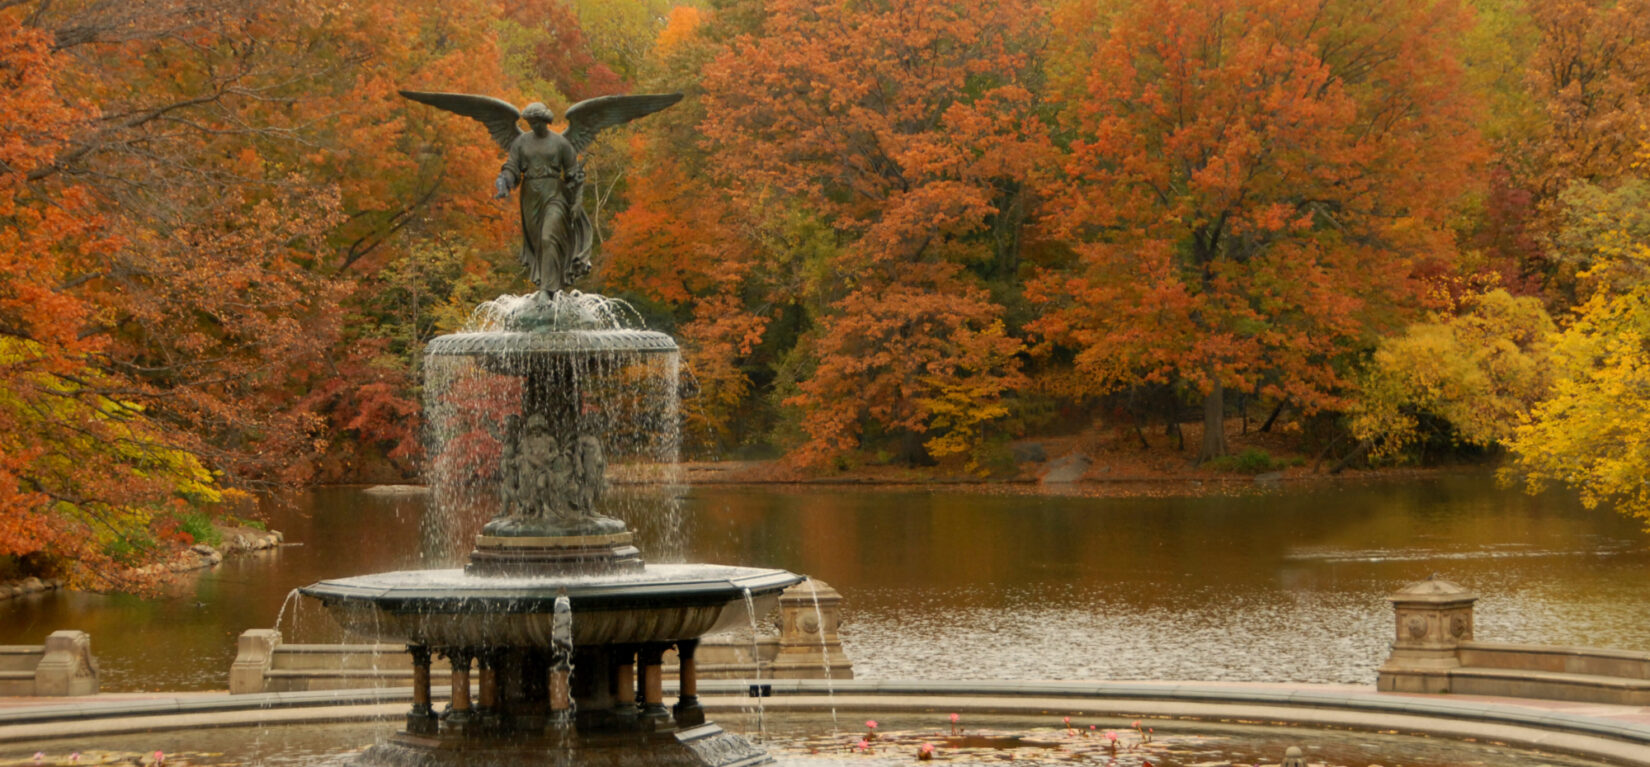 The Bethesda Fountain pictured in fall, with red and yellow foliage reflected in the Lake